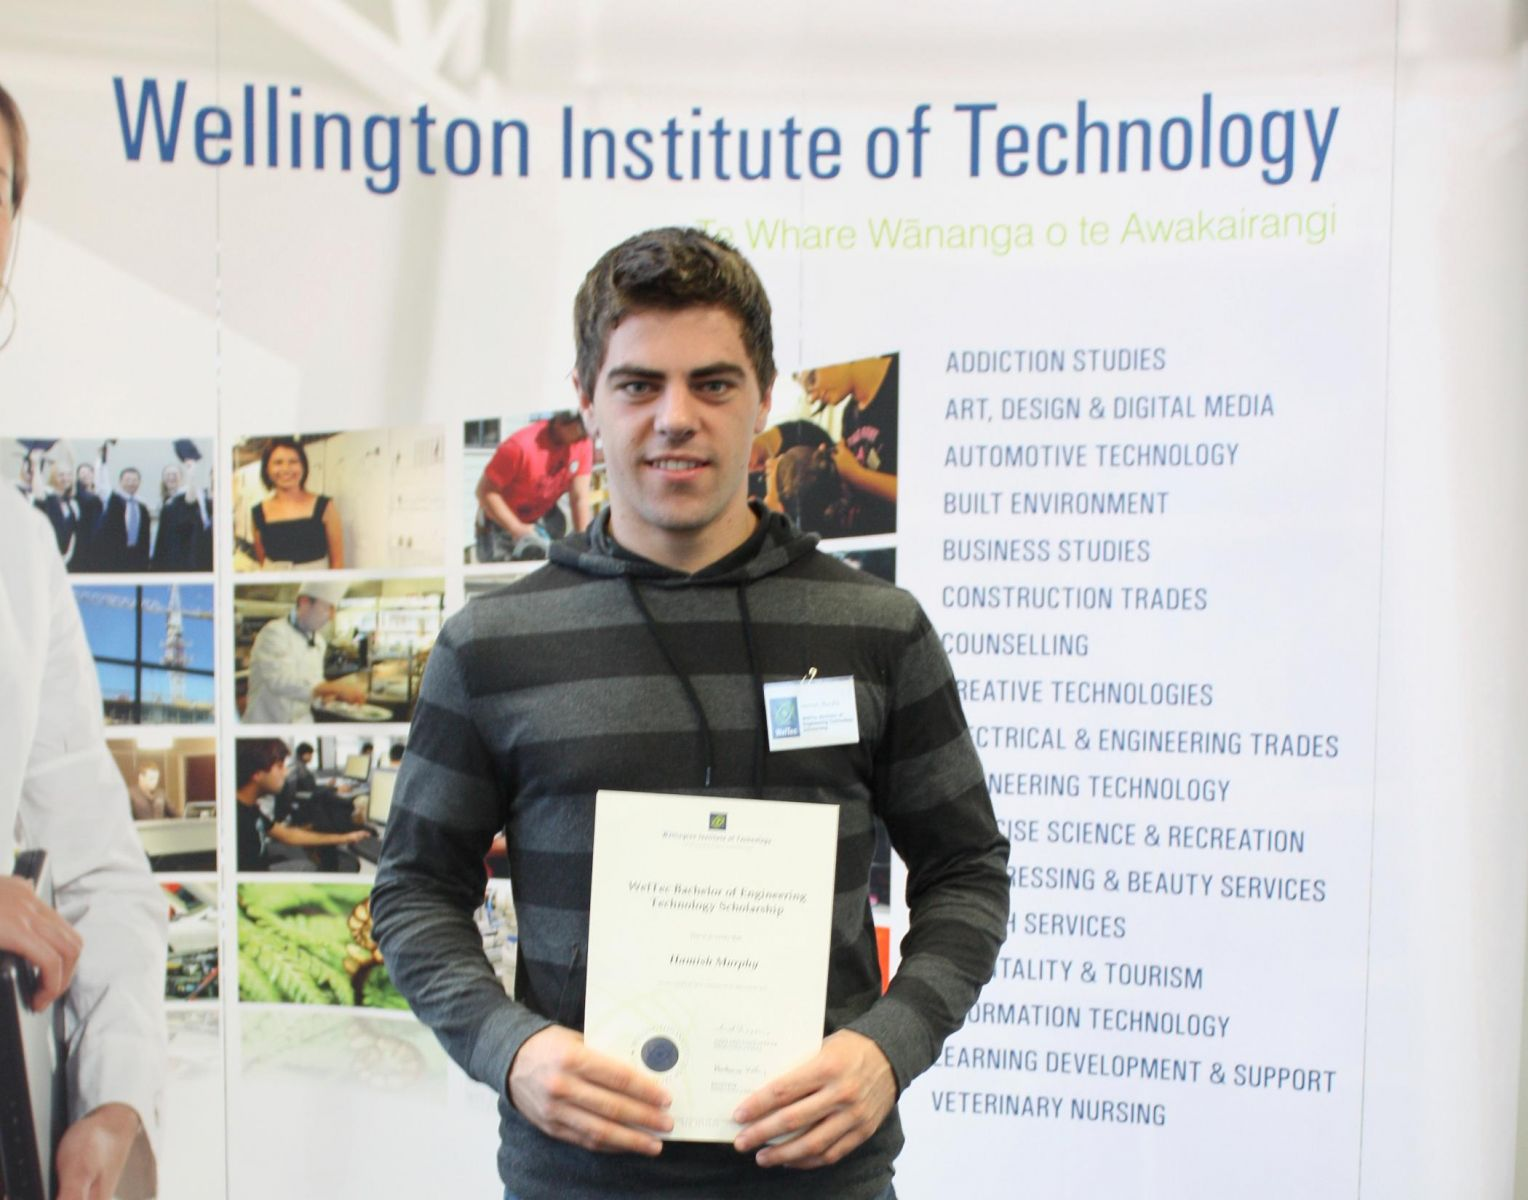 Du học New Zealand - Công nghệ Kỹ thuật (Engineering Technology) - Wellington Institute of Technology